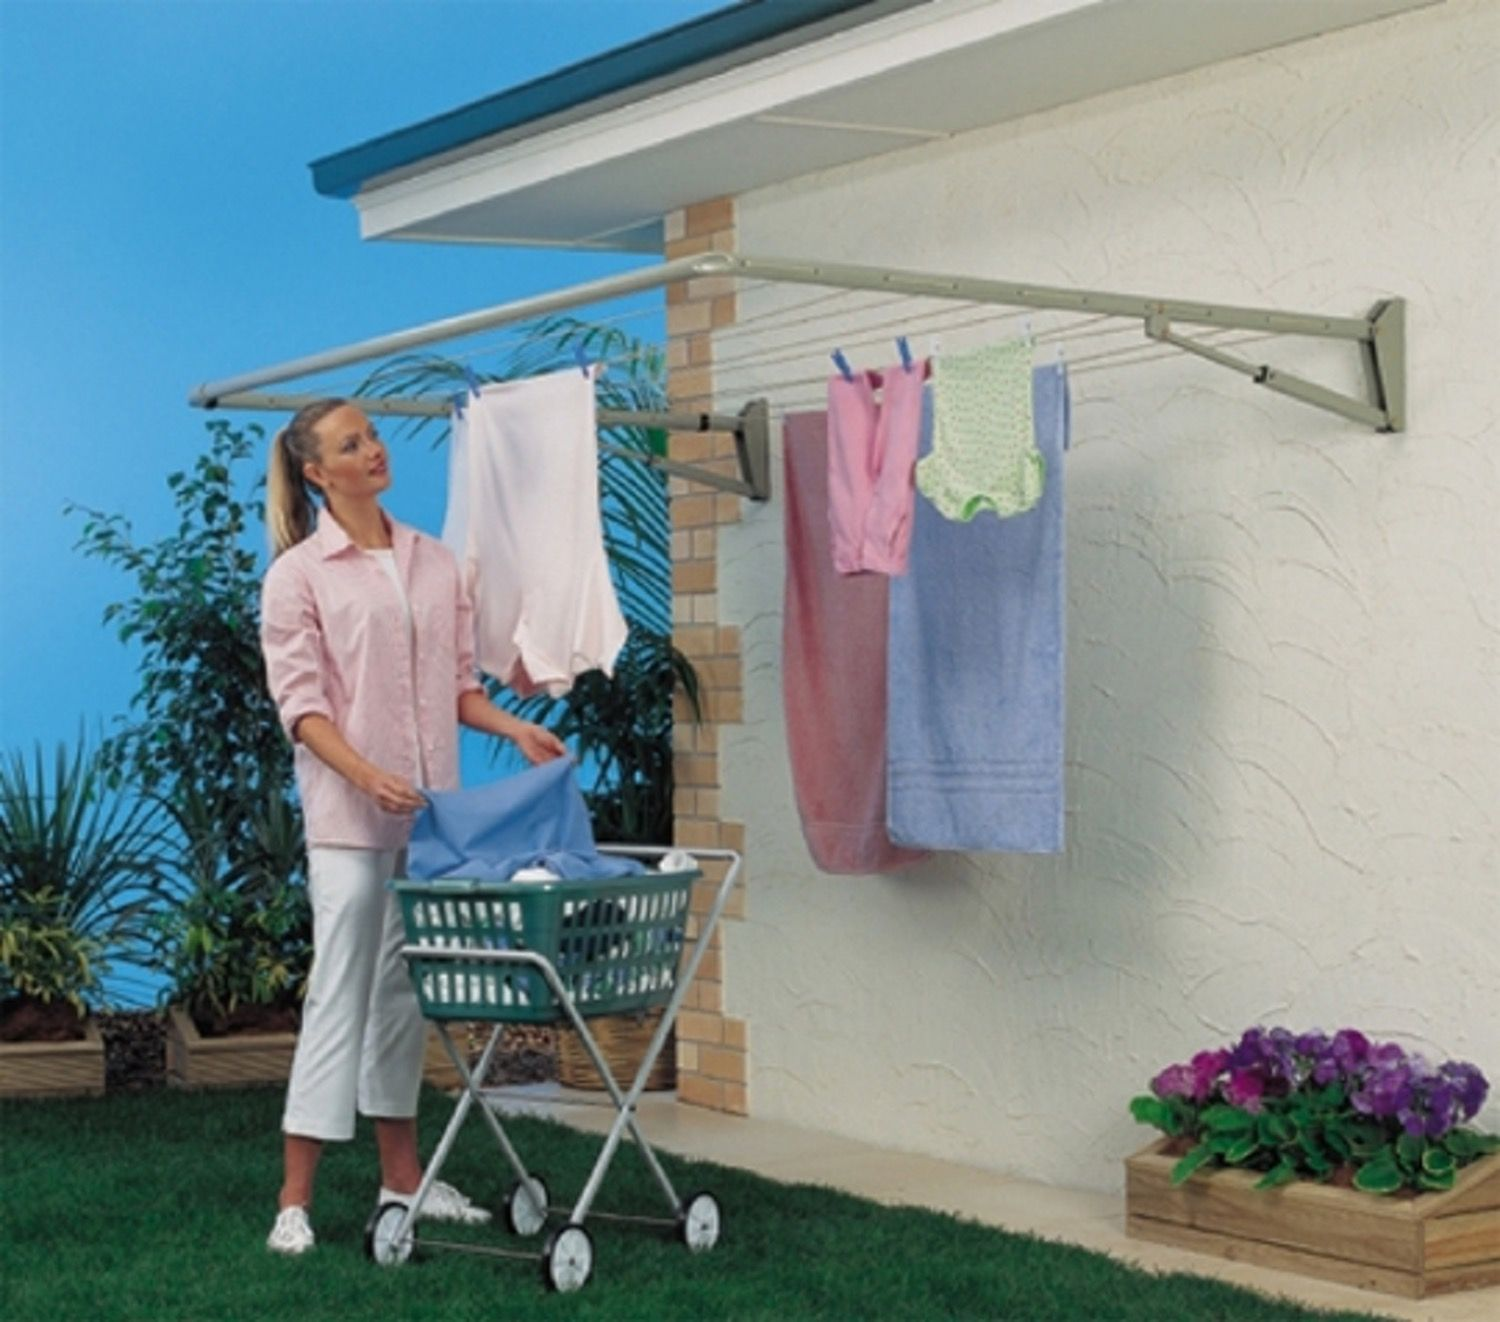 Wall Mount Folding Drying Rack Outdoor Clothes Lines